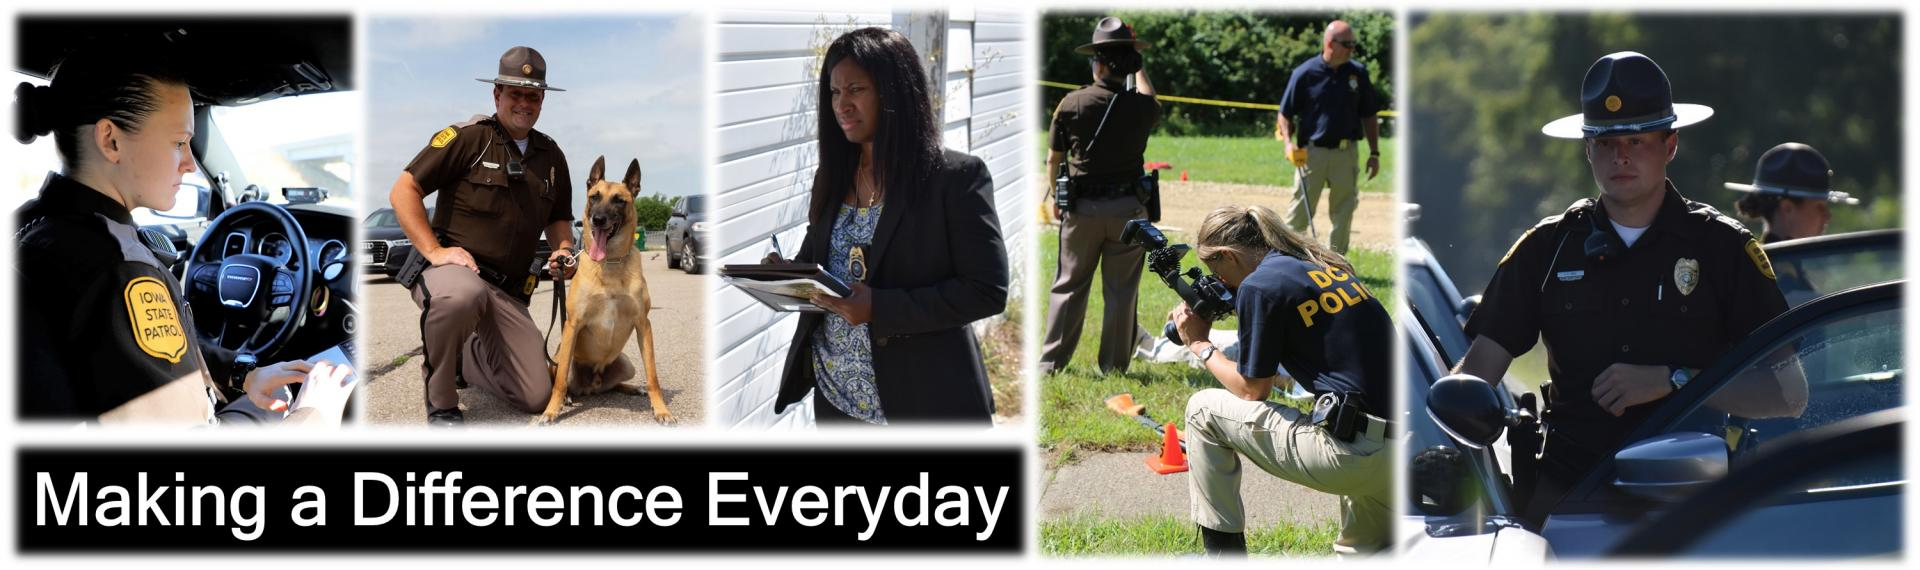 pictures of Troopers and Agents making a difference everyday